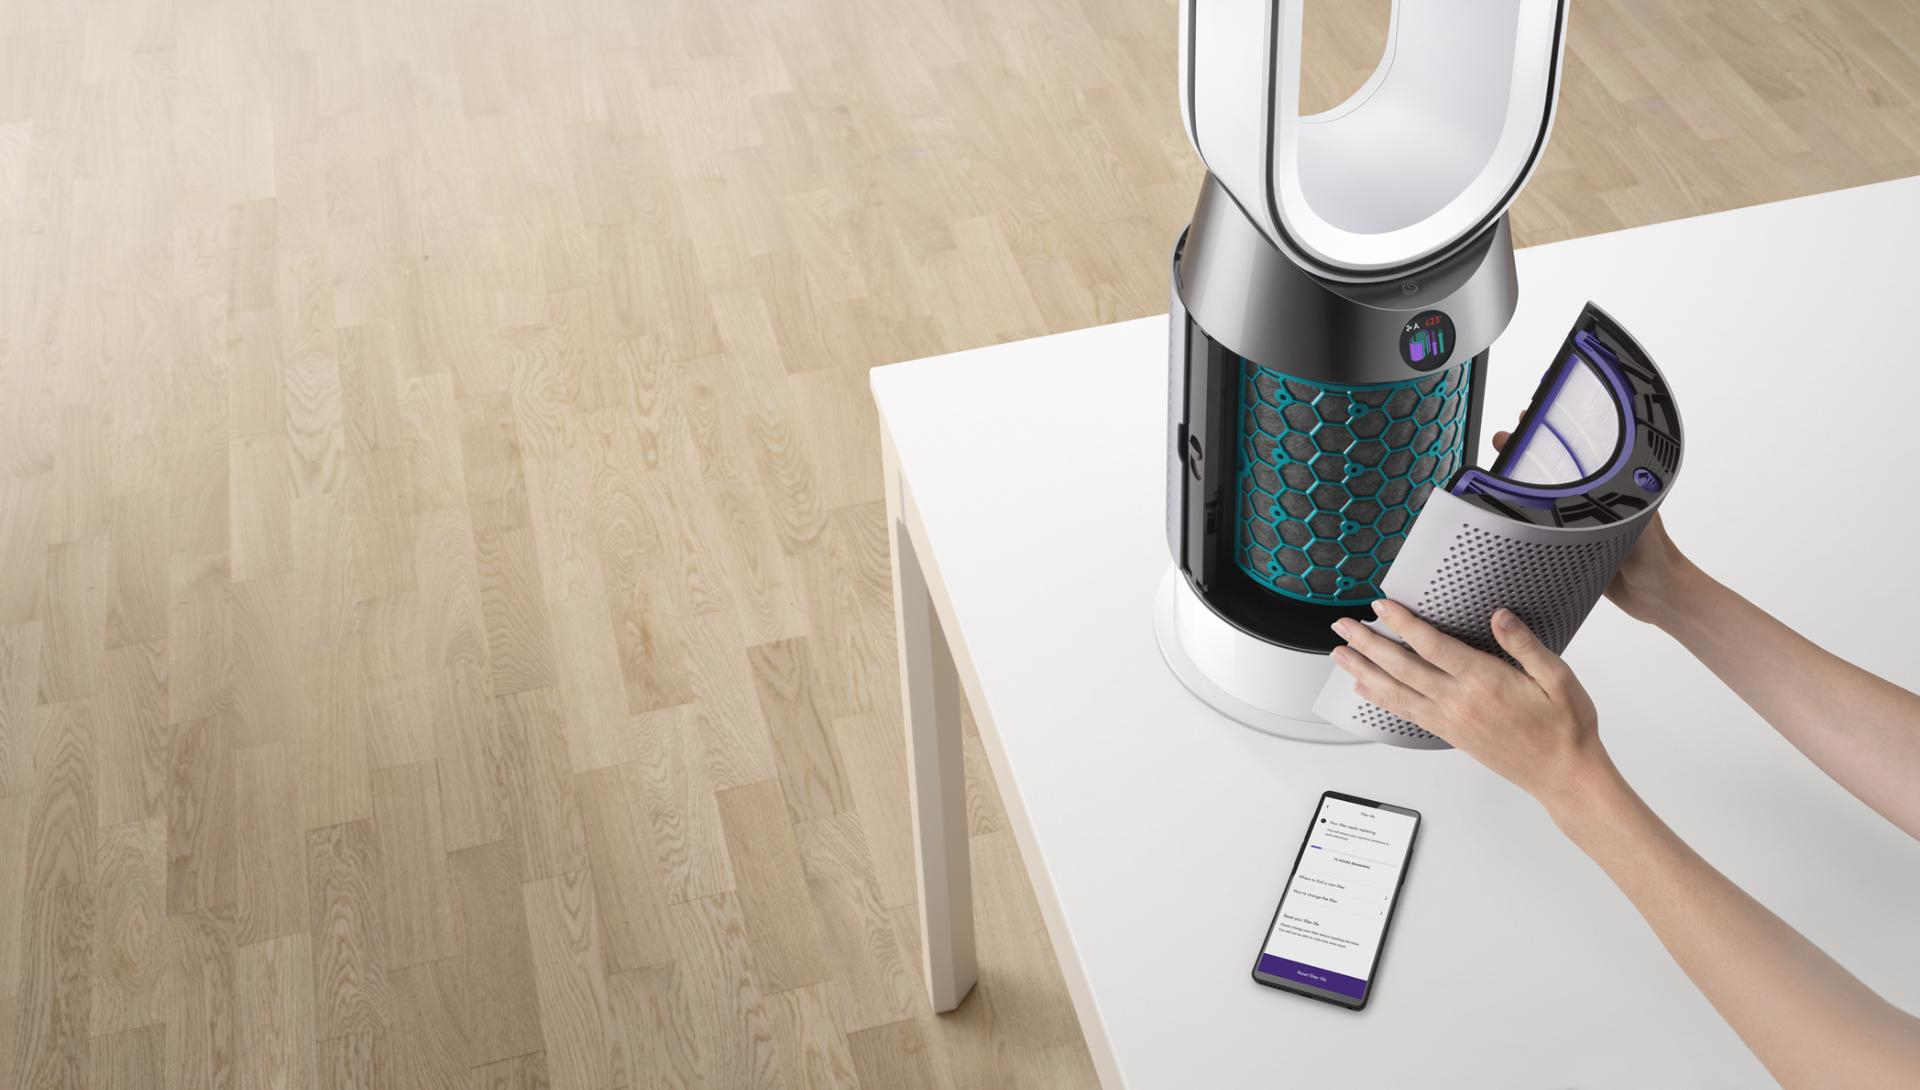 Demonstration of Dyson purifier filter being changed